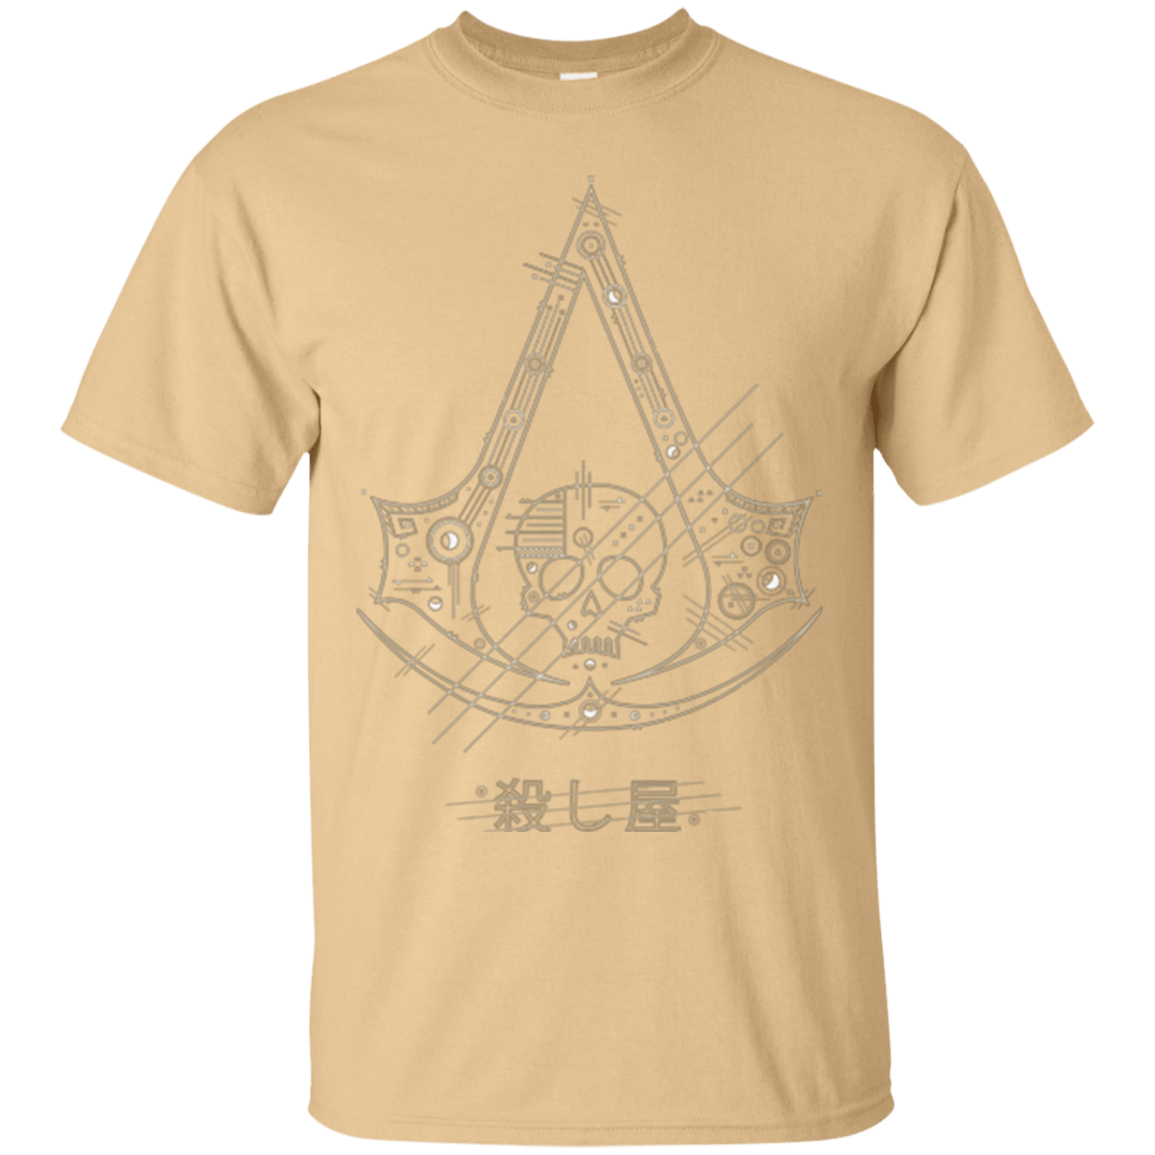 T-Shirts Vegas Gold / Small Tech Creed T-Shirt